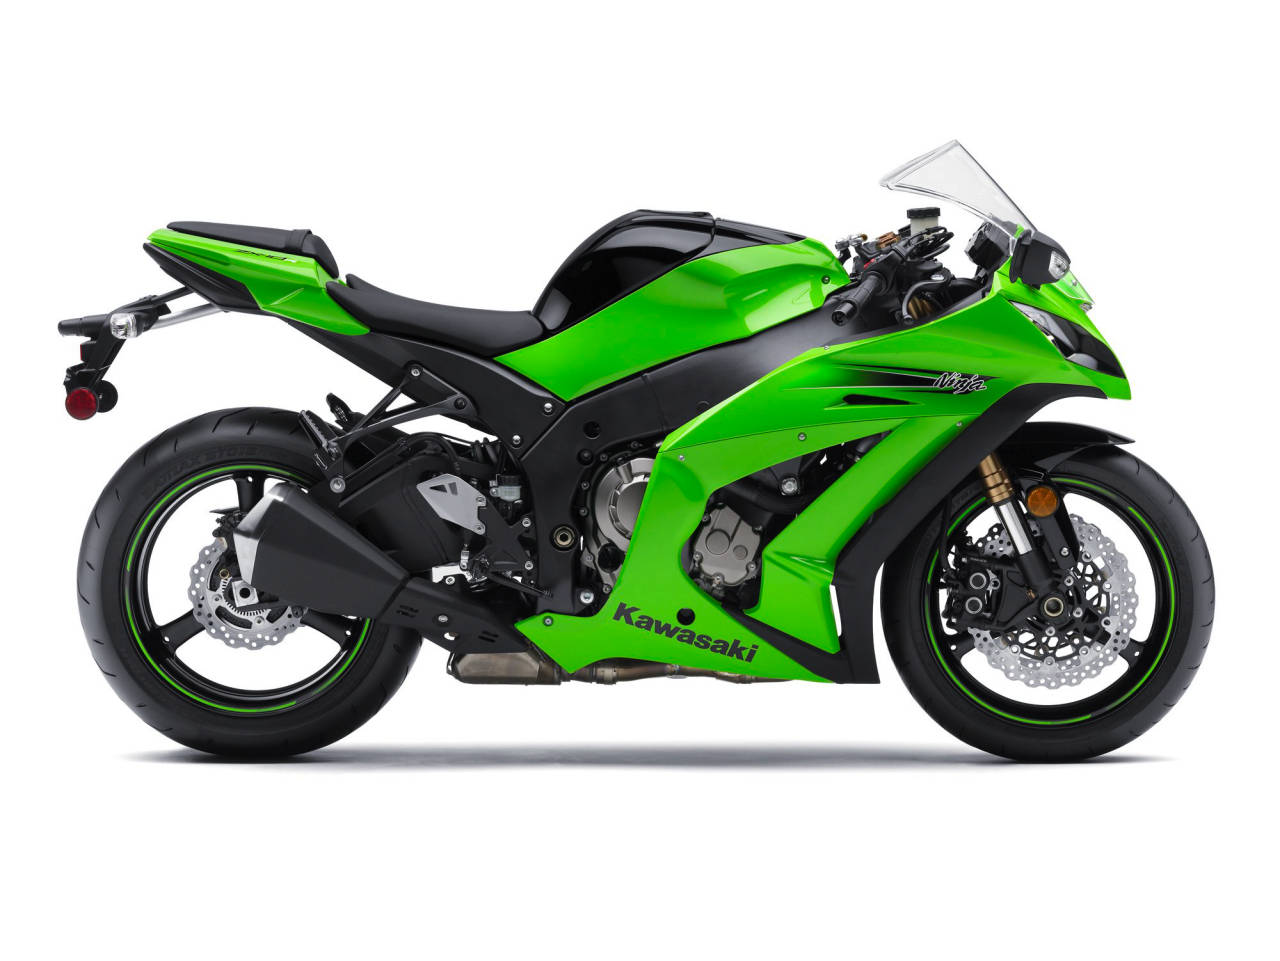 recall 2011 2012 kawasaki ninja zx 10r for oil leaks asphalt rubber. Black Bedroom Furniture Sets. Home Design Ideas